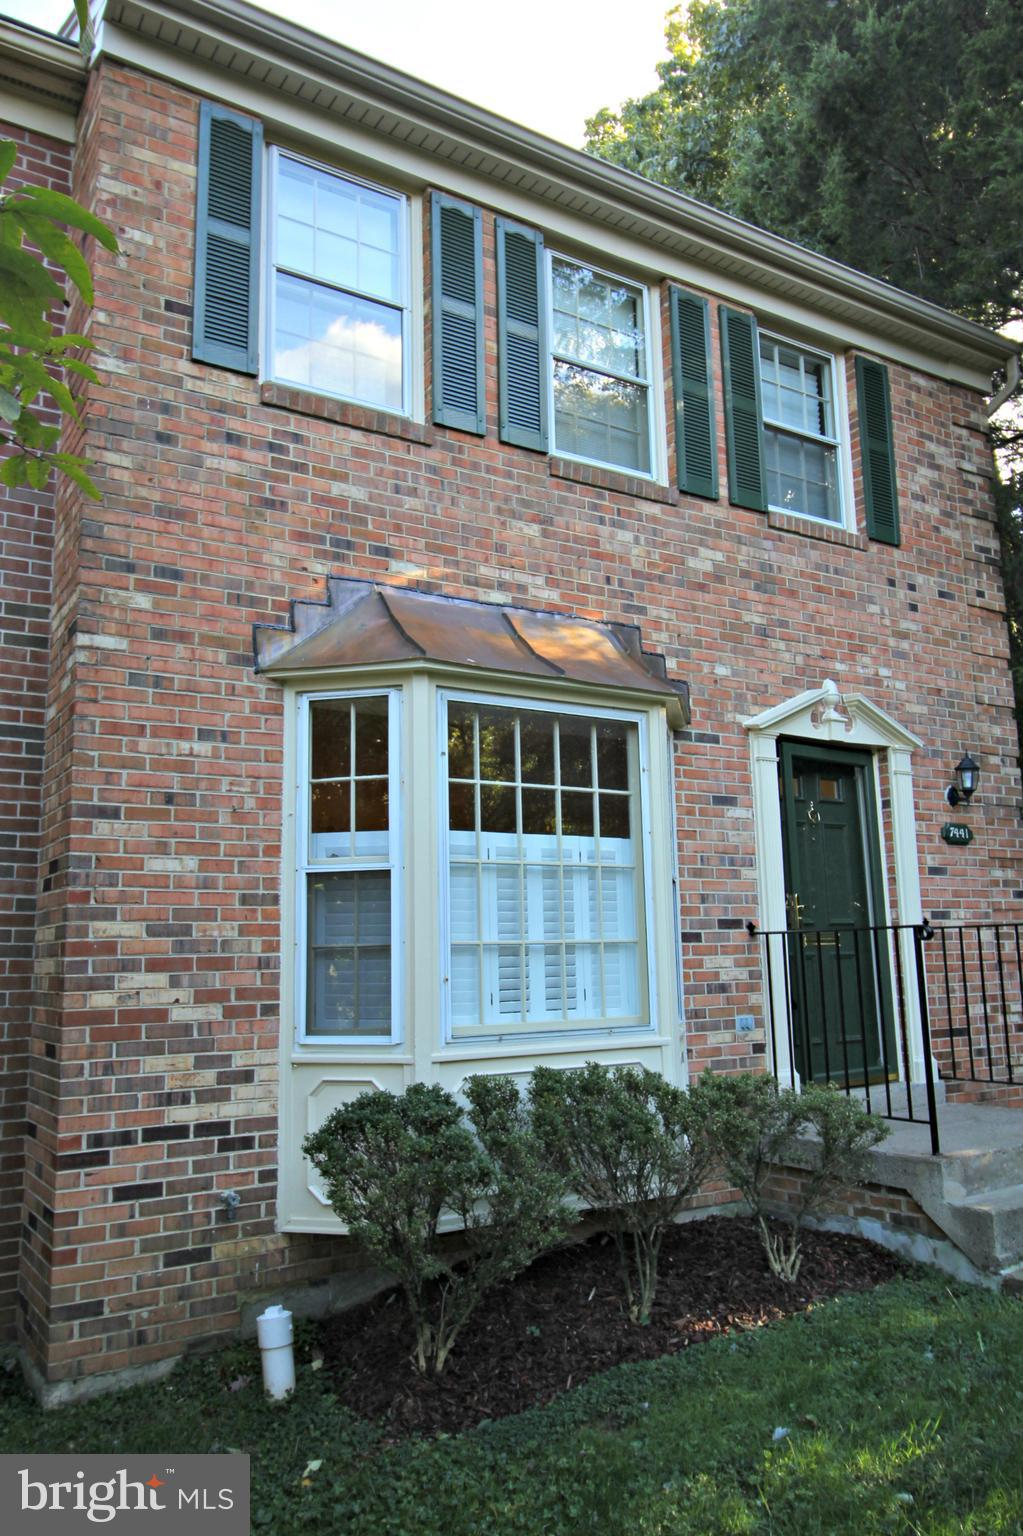 *WONDERFUL* 3BR/3.5BA end unit town home in convenient Falls Church location! This amazing town house features gleaming hardwood floors; living room with bay window that opens to the dining room; updated kitchen with granite counters and stainless steel appliances and eat-in area with fireplace! The master bedroom suite includes walk-in closet and en suite full bathroom! Fully finished, walk-out LL!